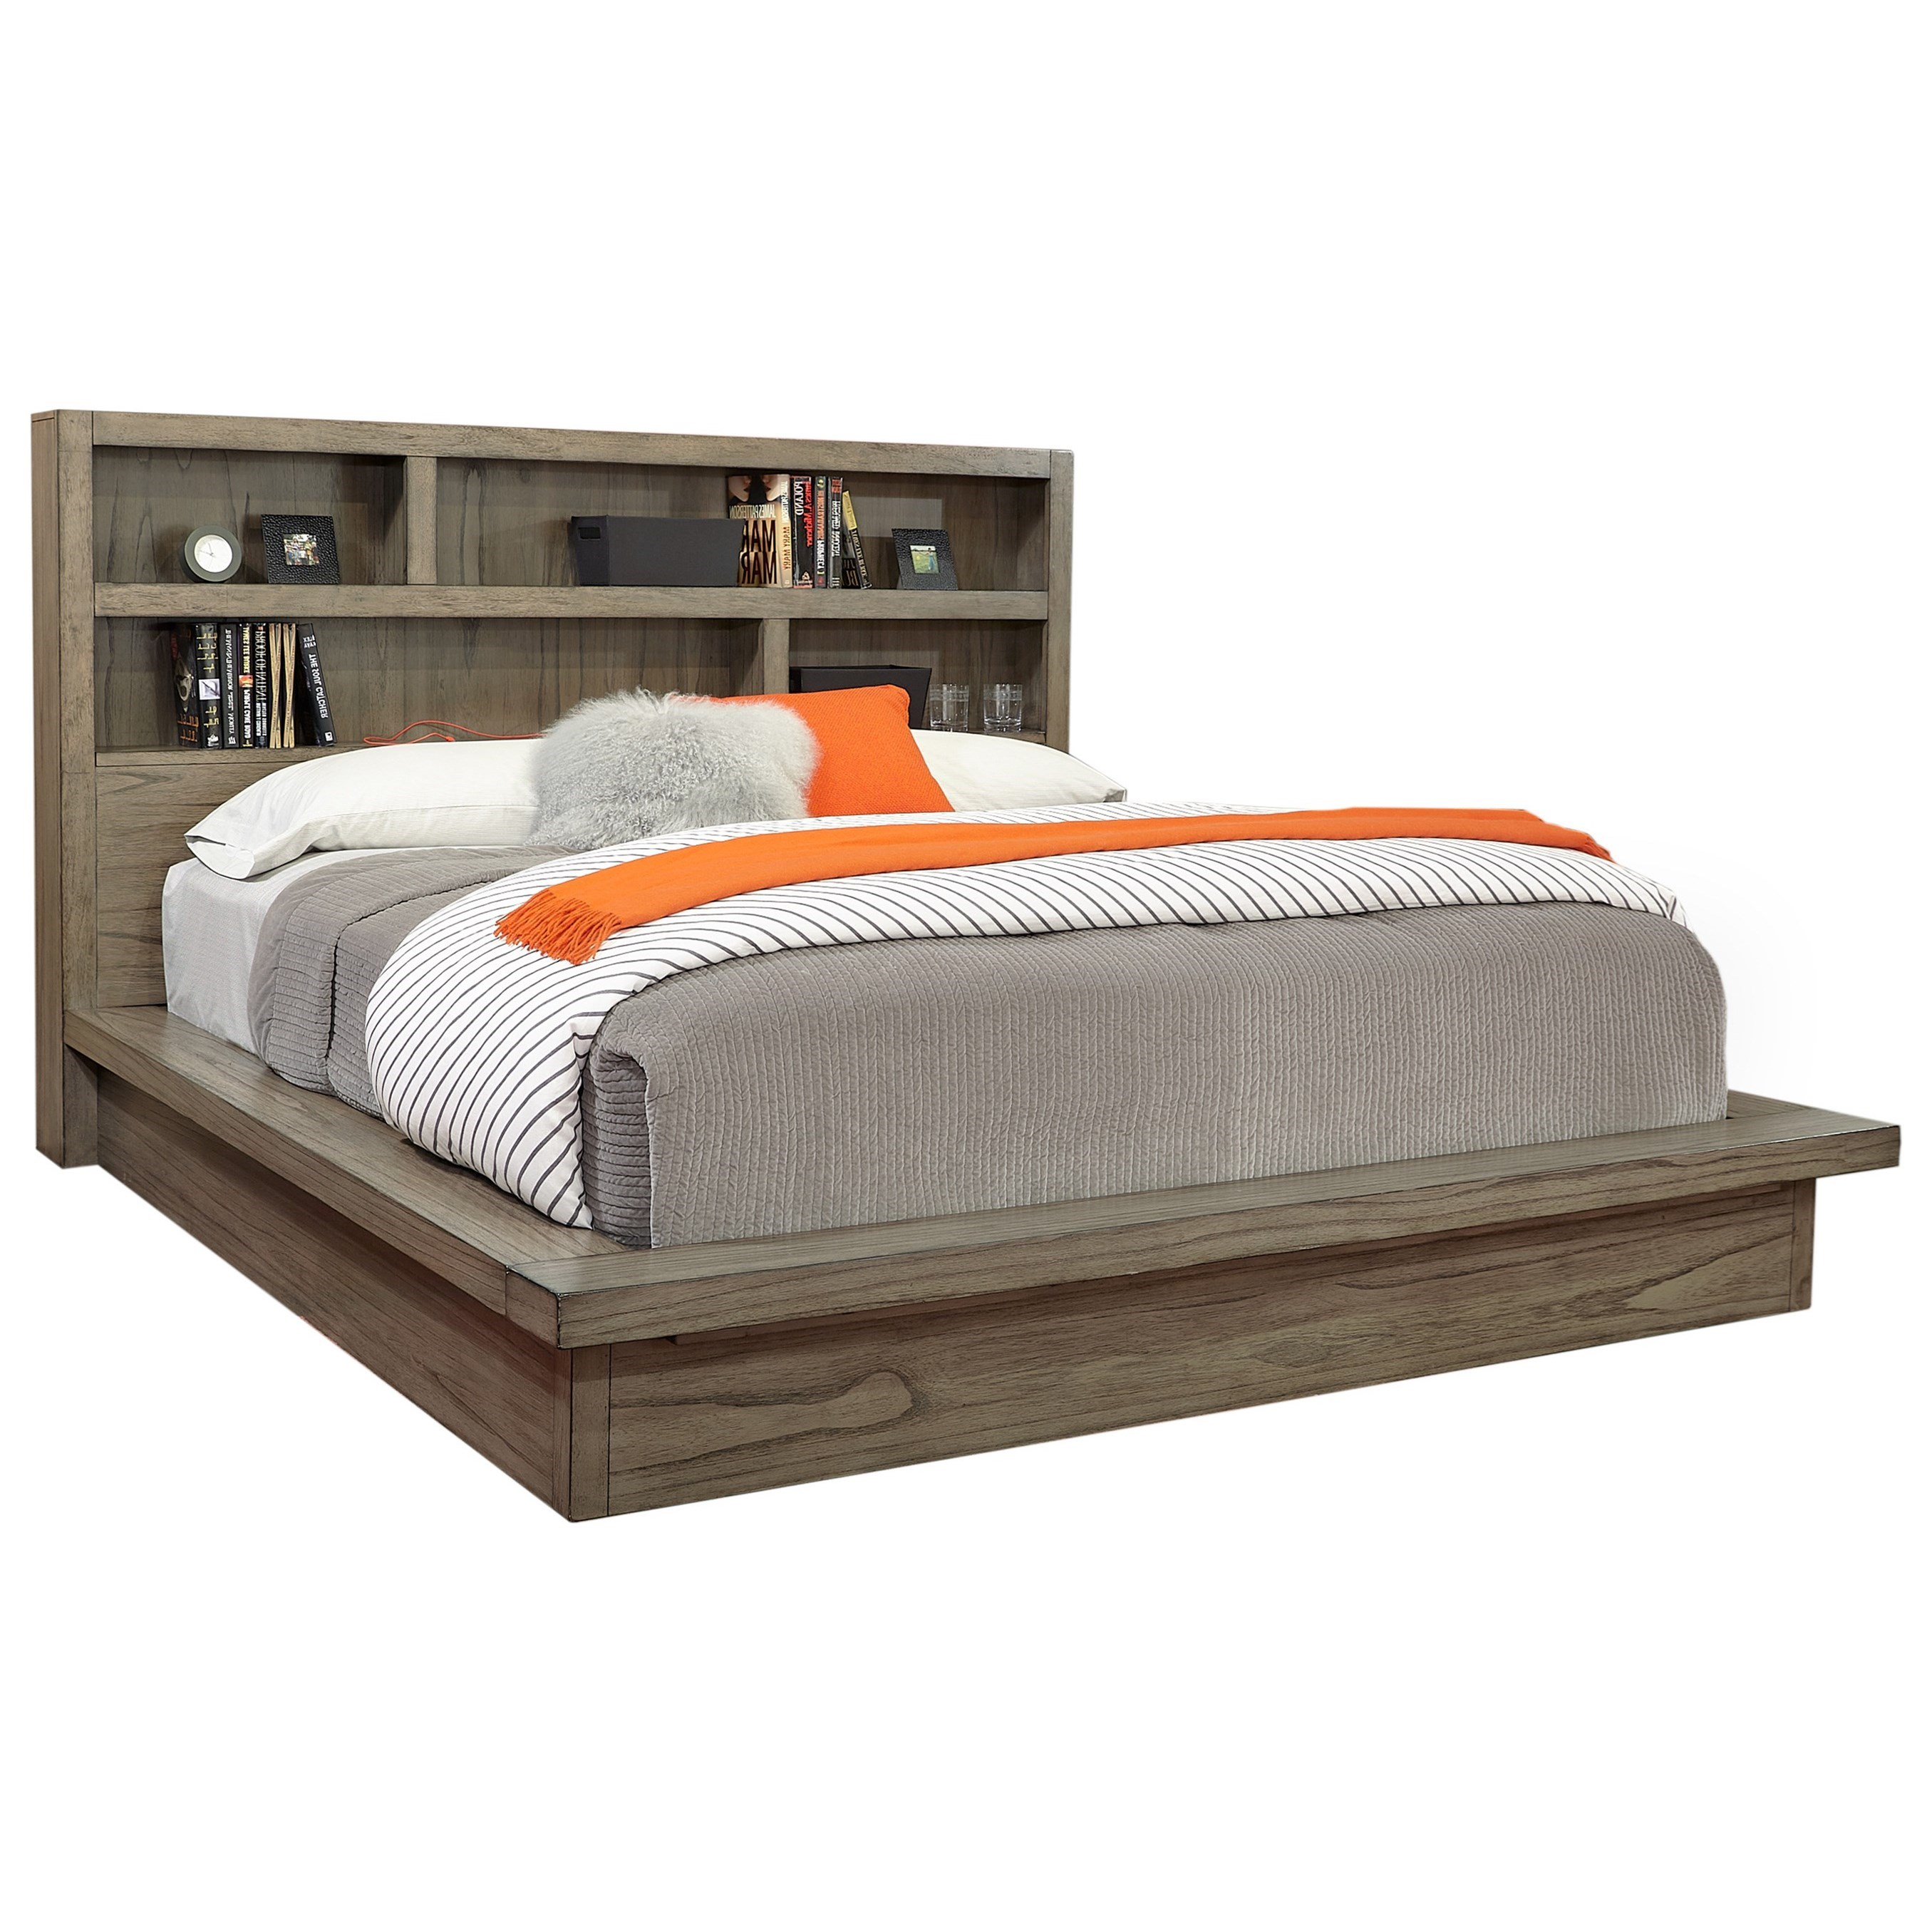 Modern Loft Queen Platform Bed by Aspenhome at Baer's Furniture